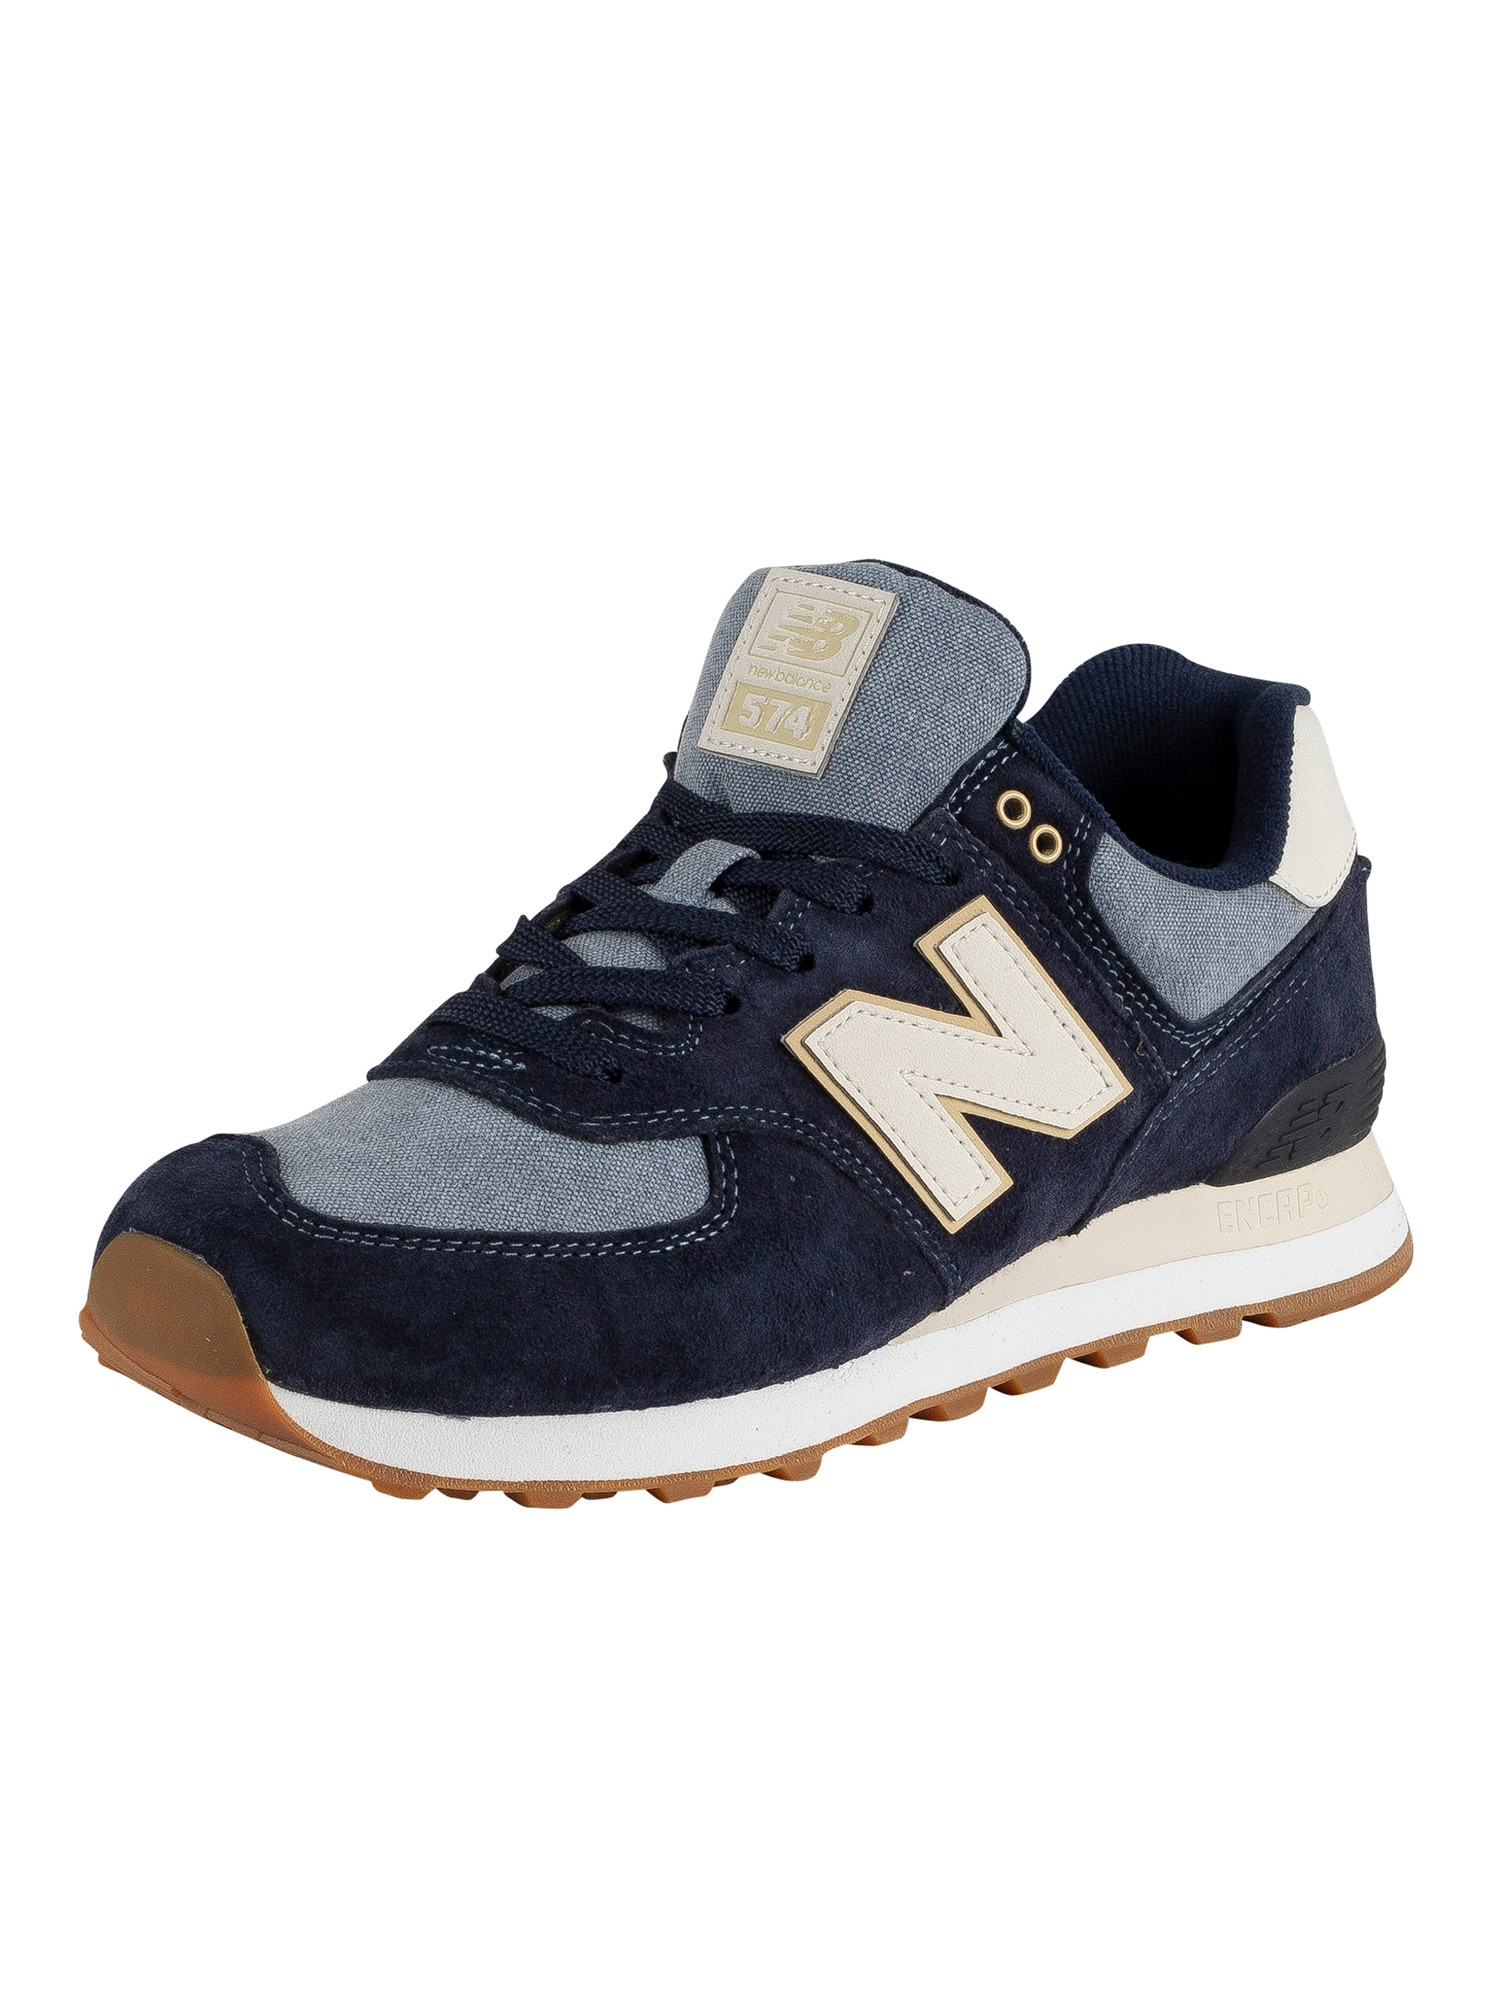 new concept 71ee8 a2320 New Balance 574 Suede Trainers - Navy